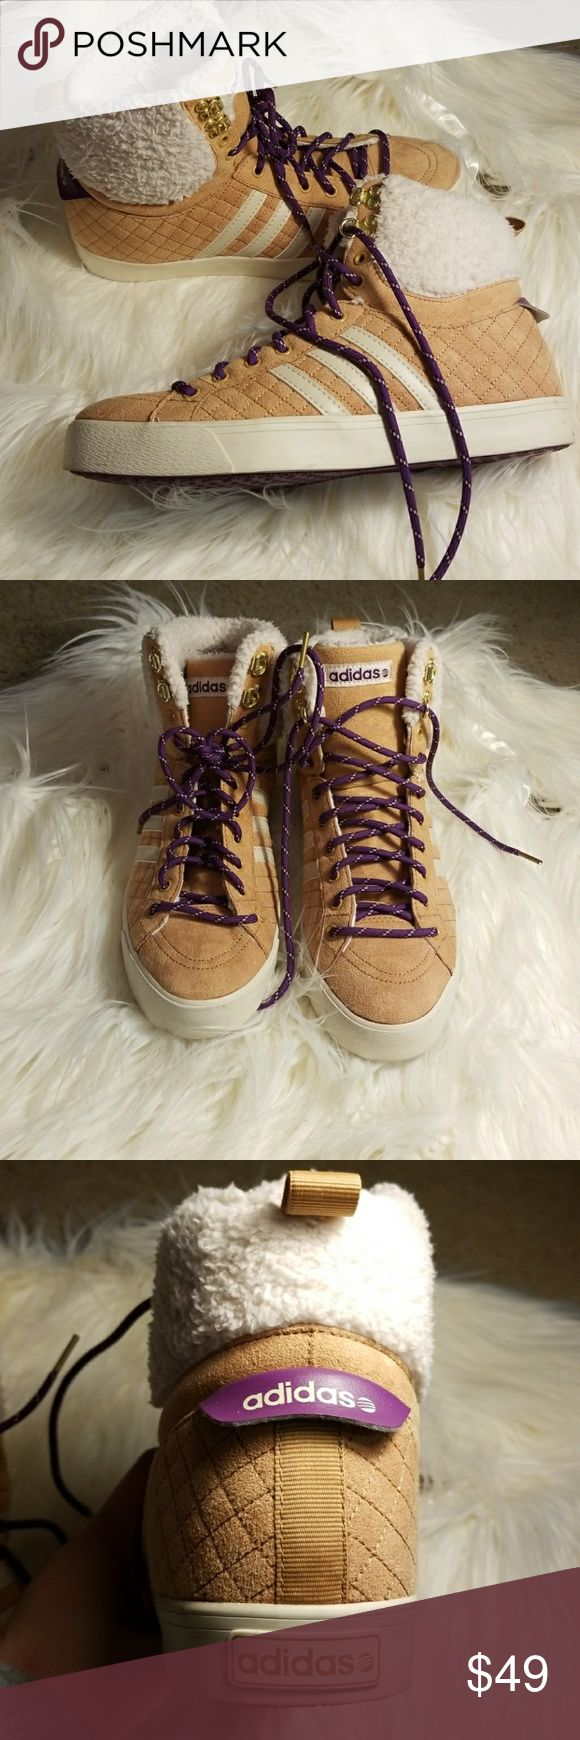 NWOT Adidas NEO Hightops Suede Adidas high tops. Brand new and never worn. NEO label size 8. No issues or marks. adidas Shoes Sneakers